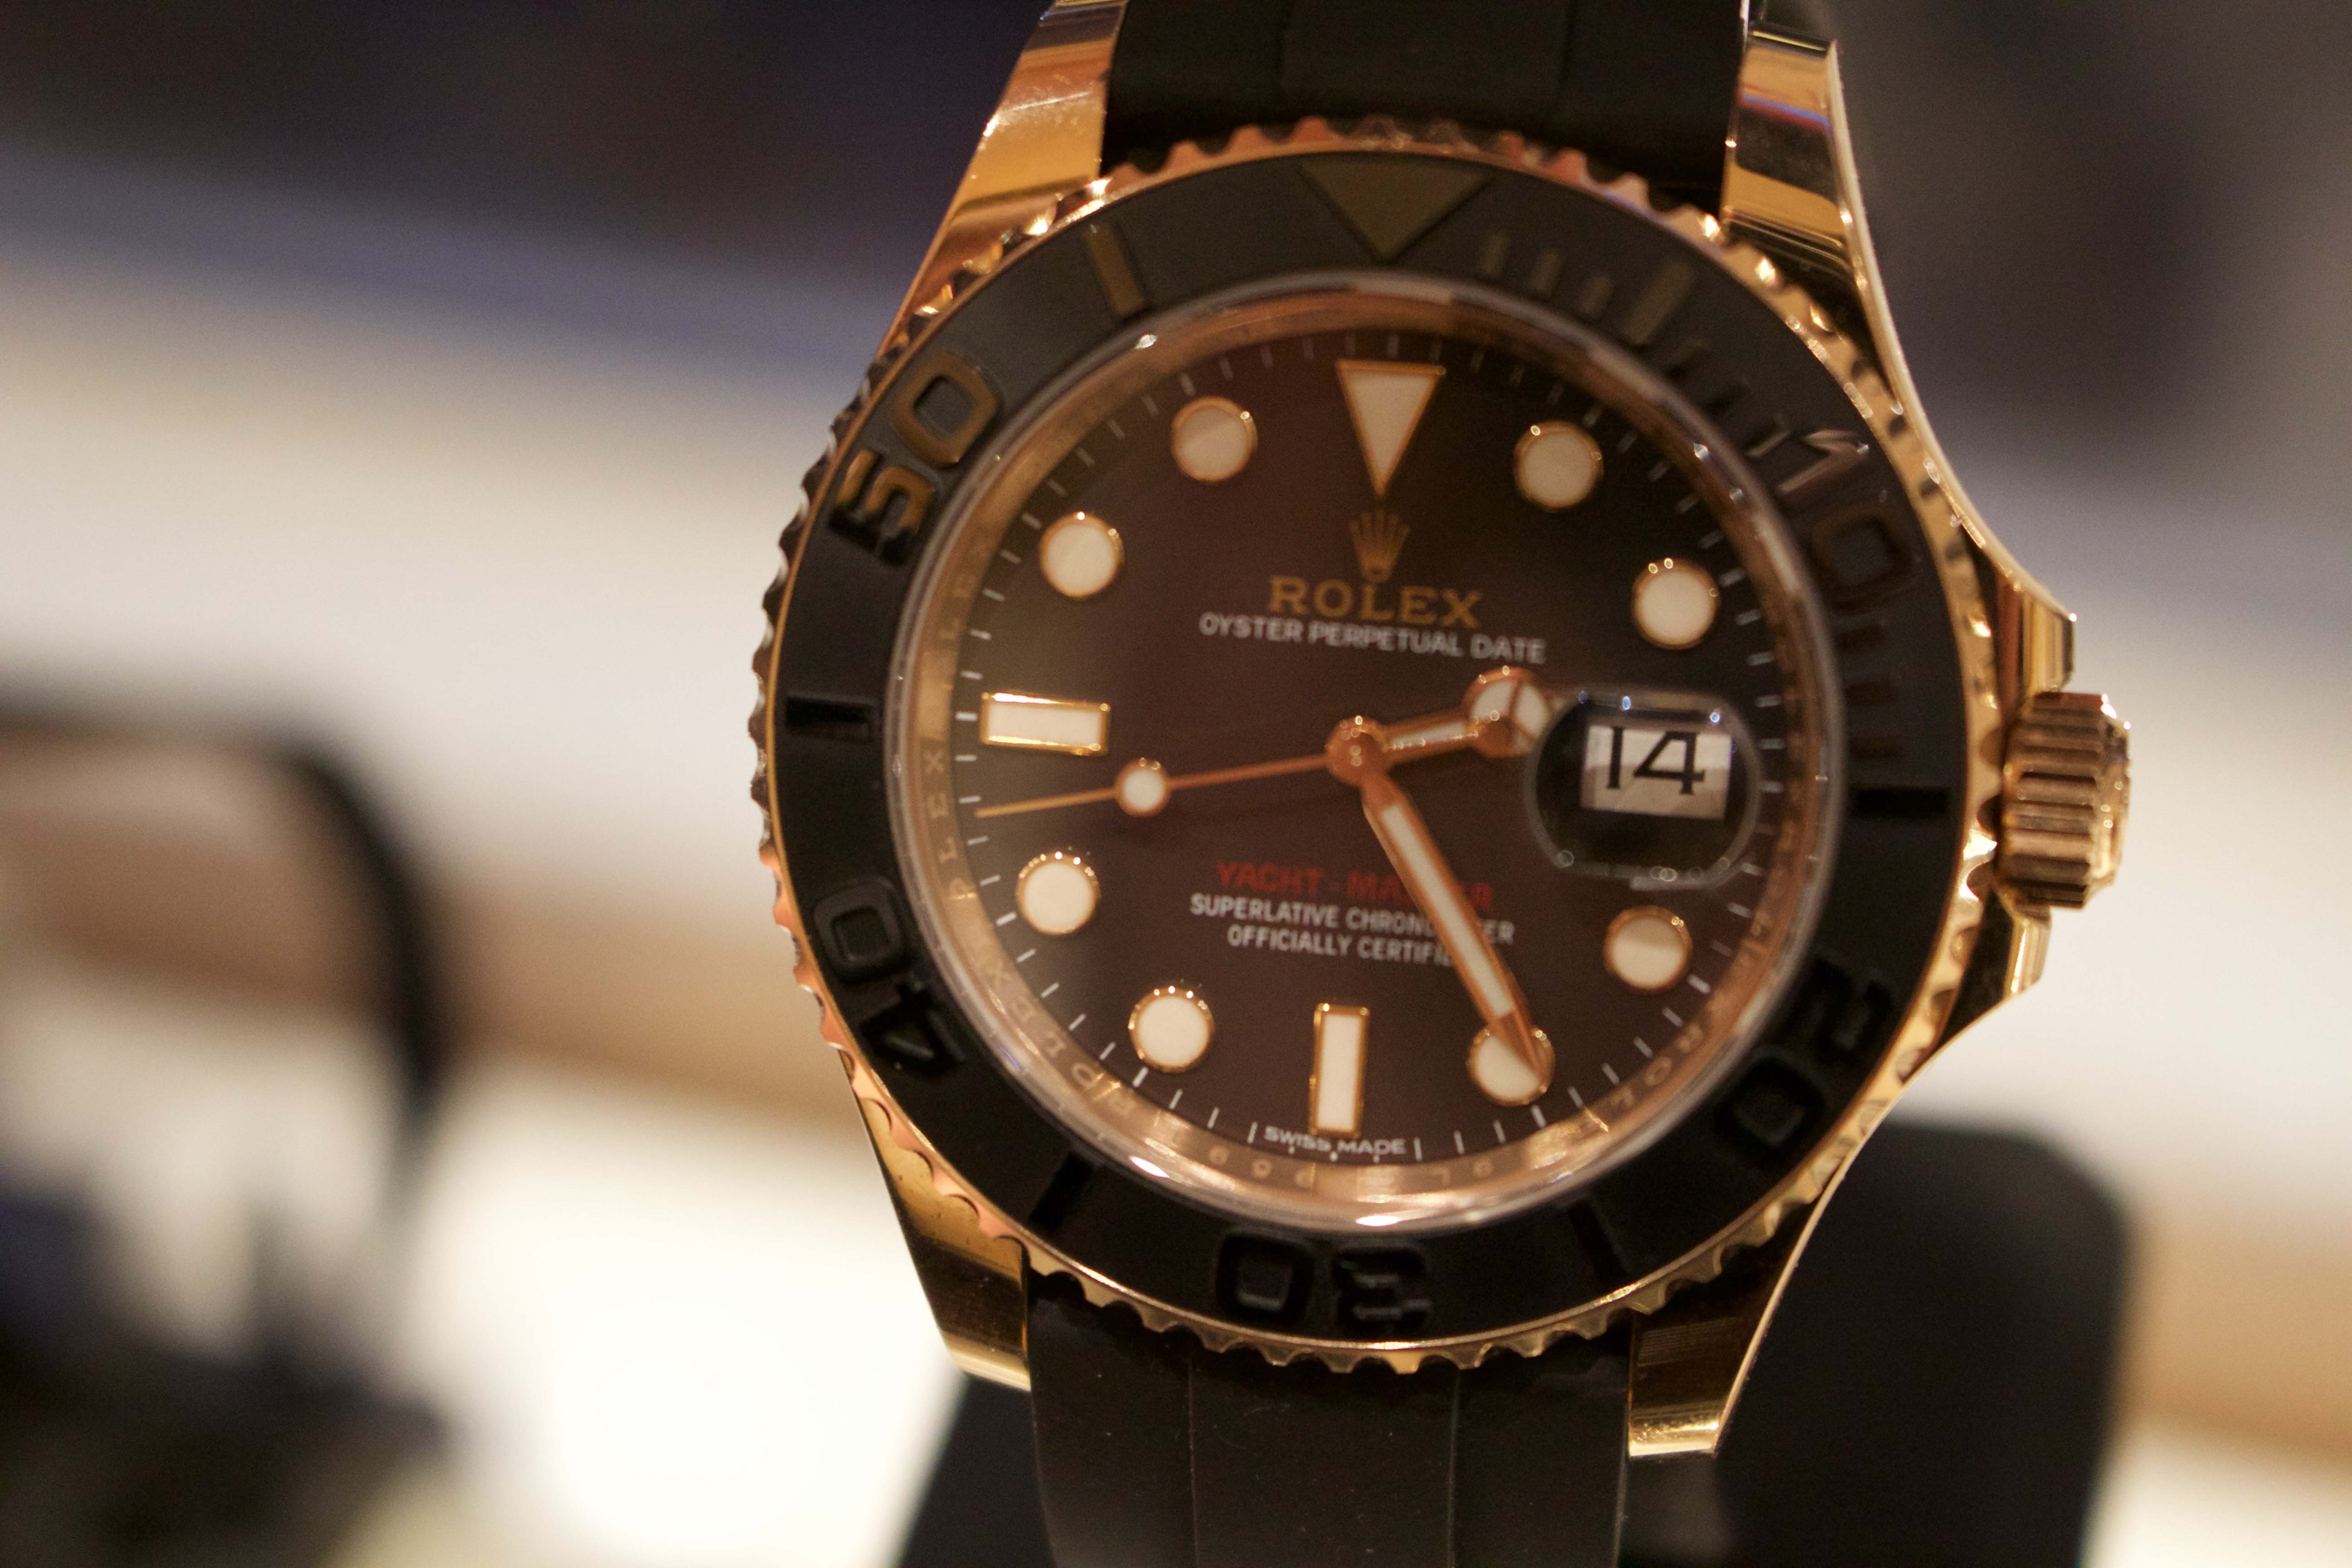 Rolexs Watches What Are Rolex Watches For The Young Quora